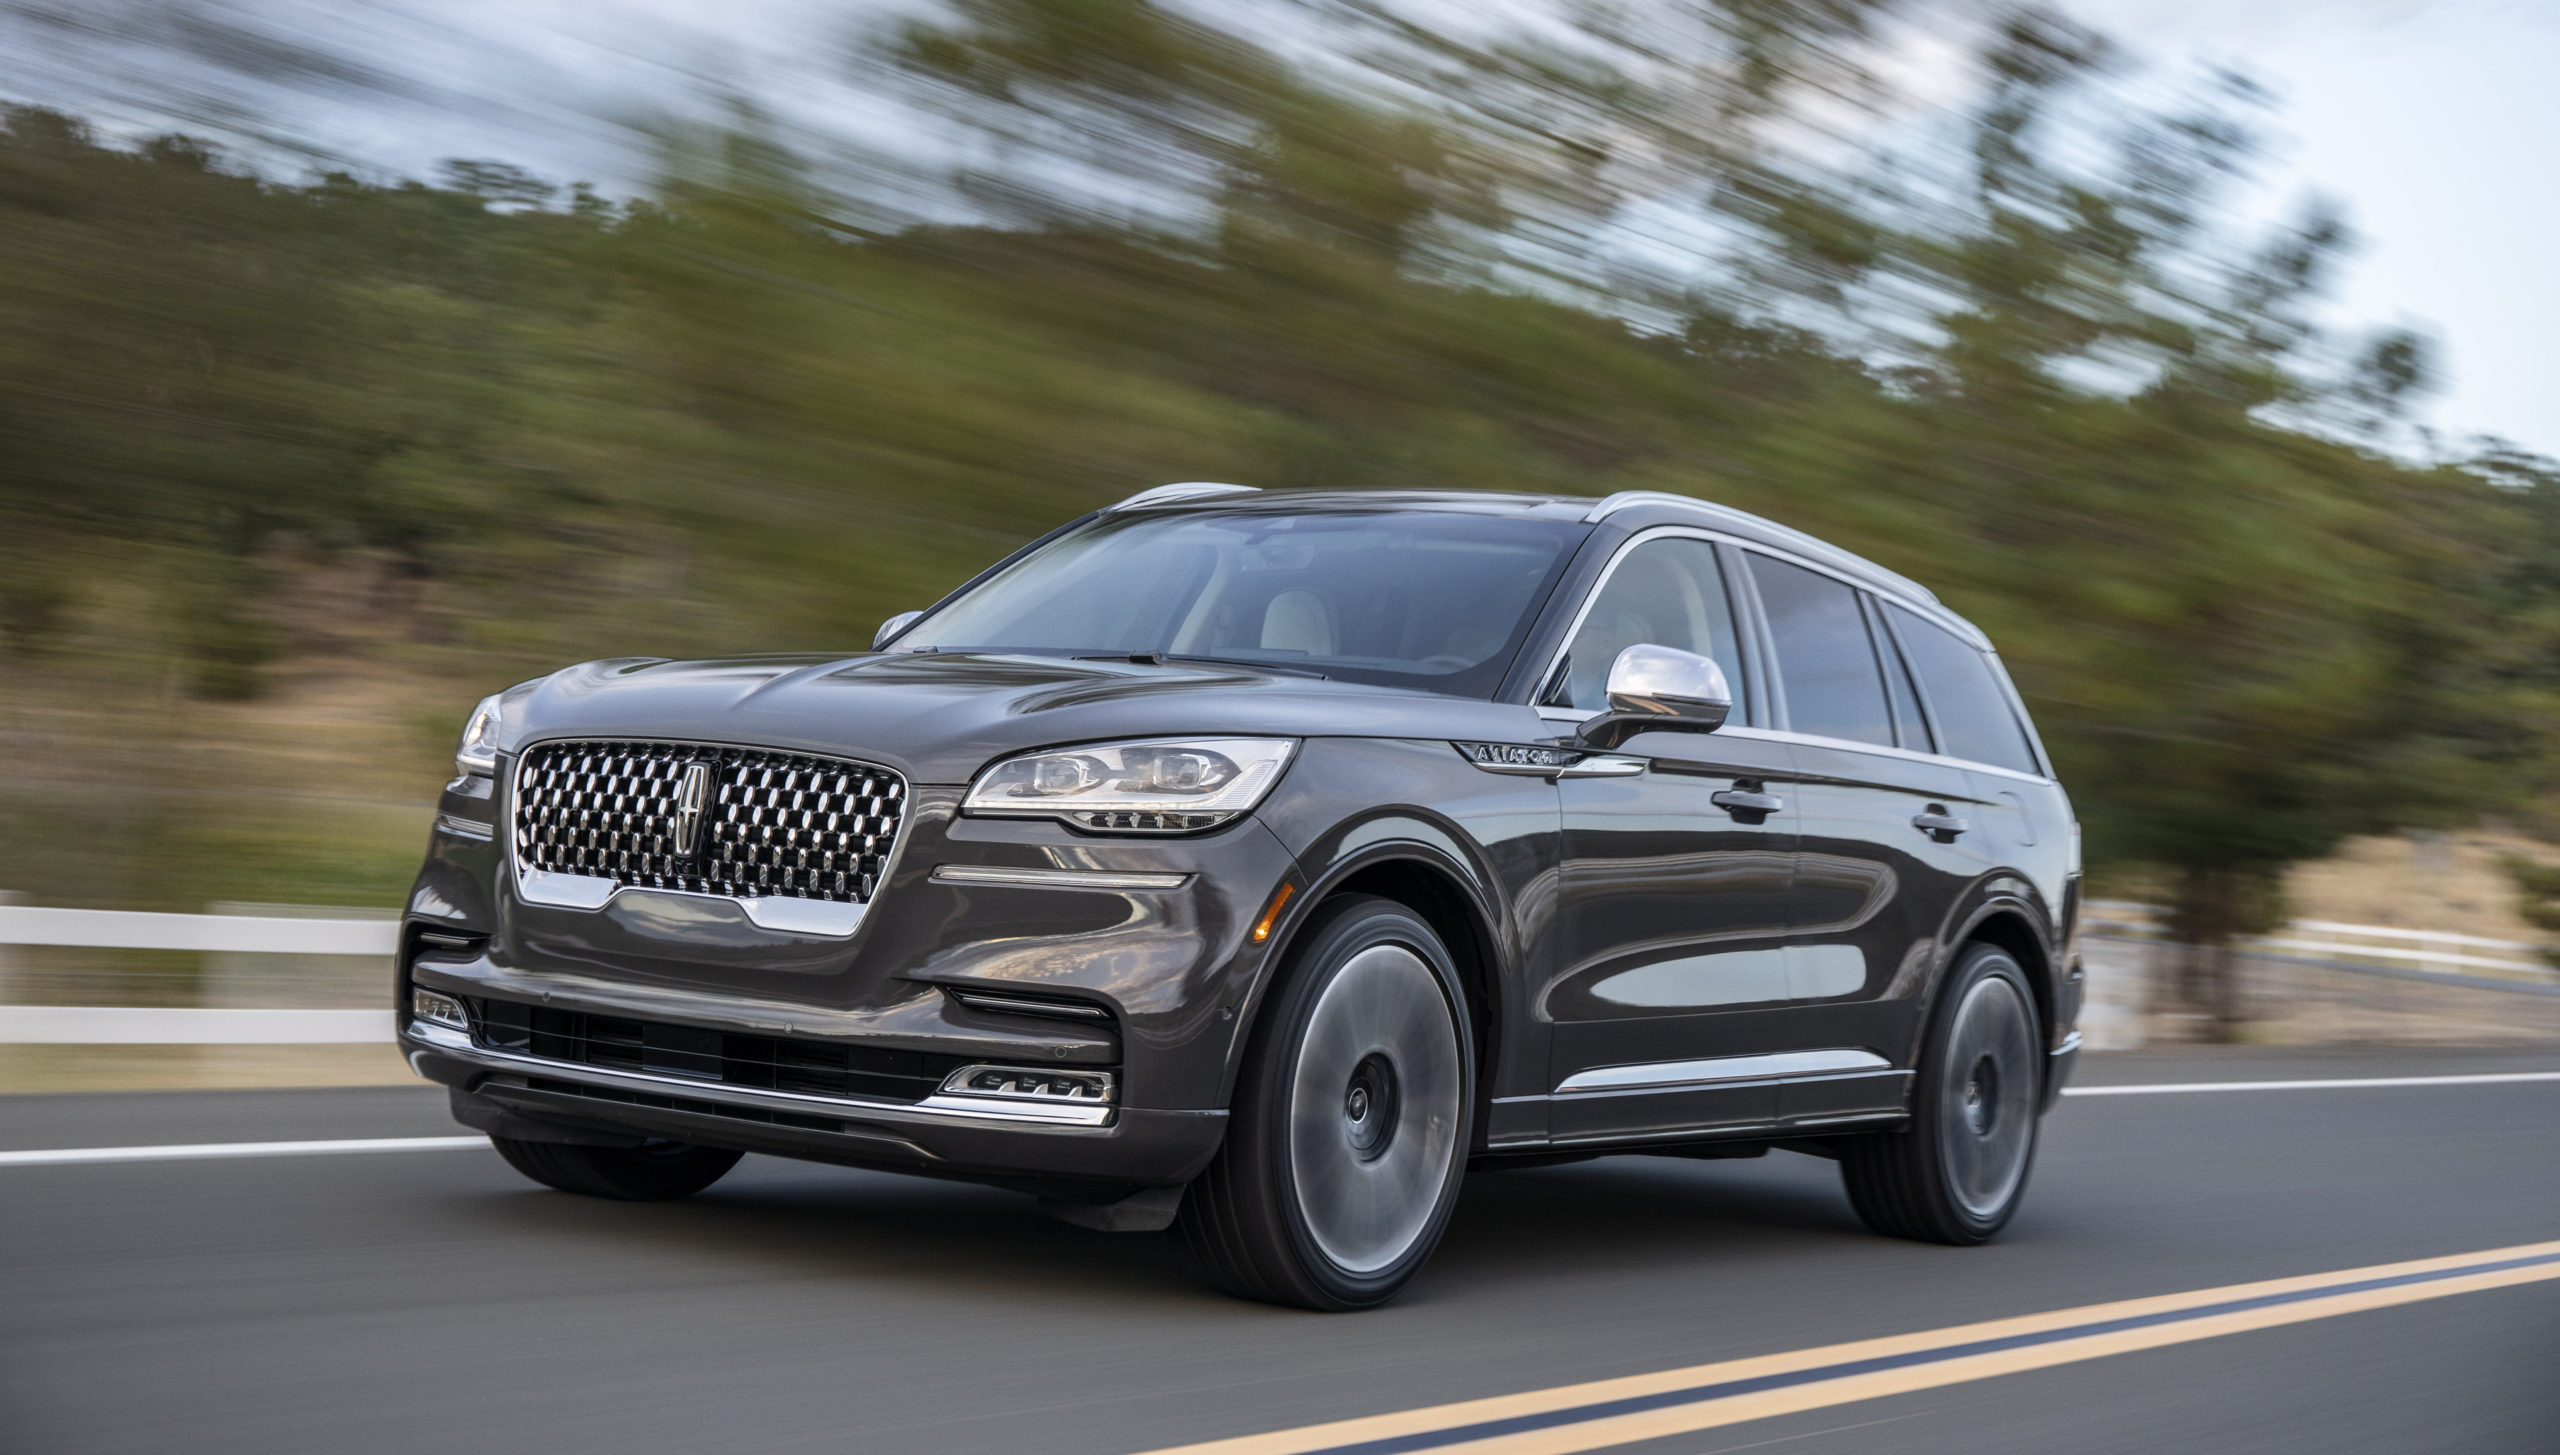 safety and luxury both coexist in the 2021 Lincoln Aviator